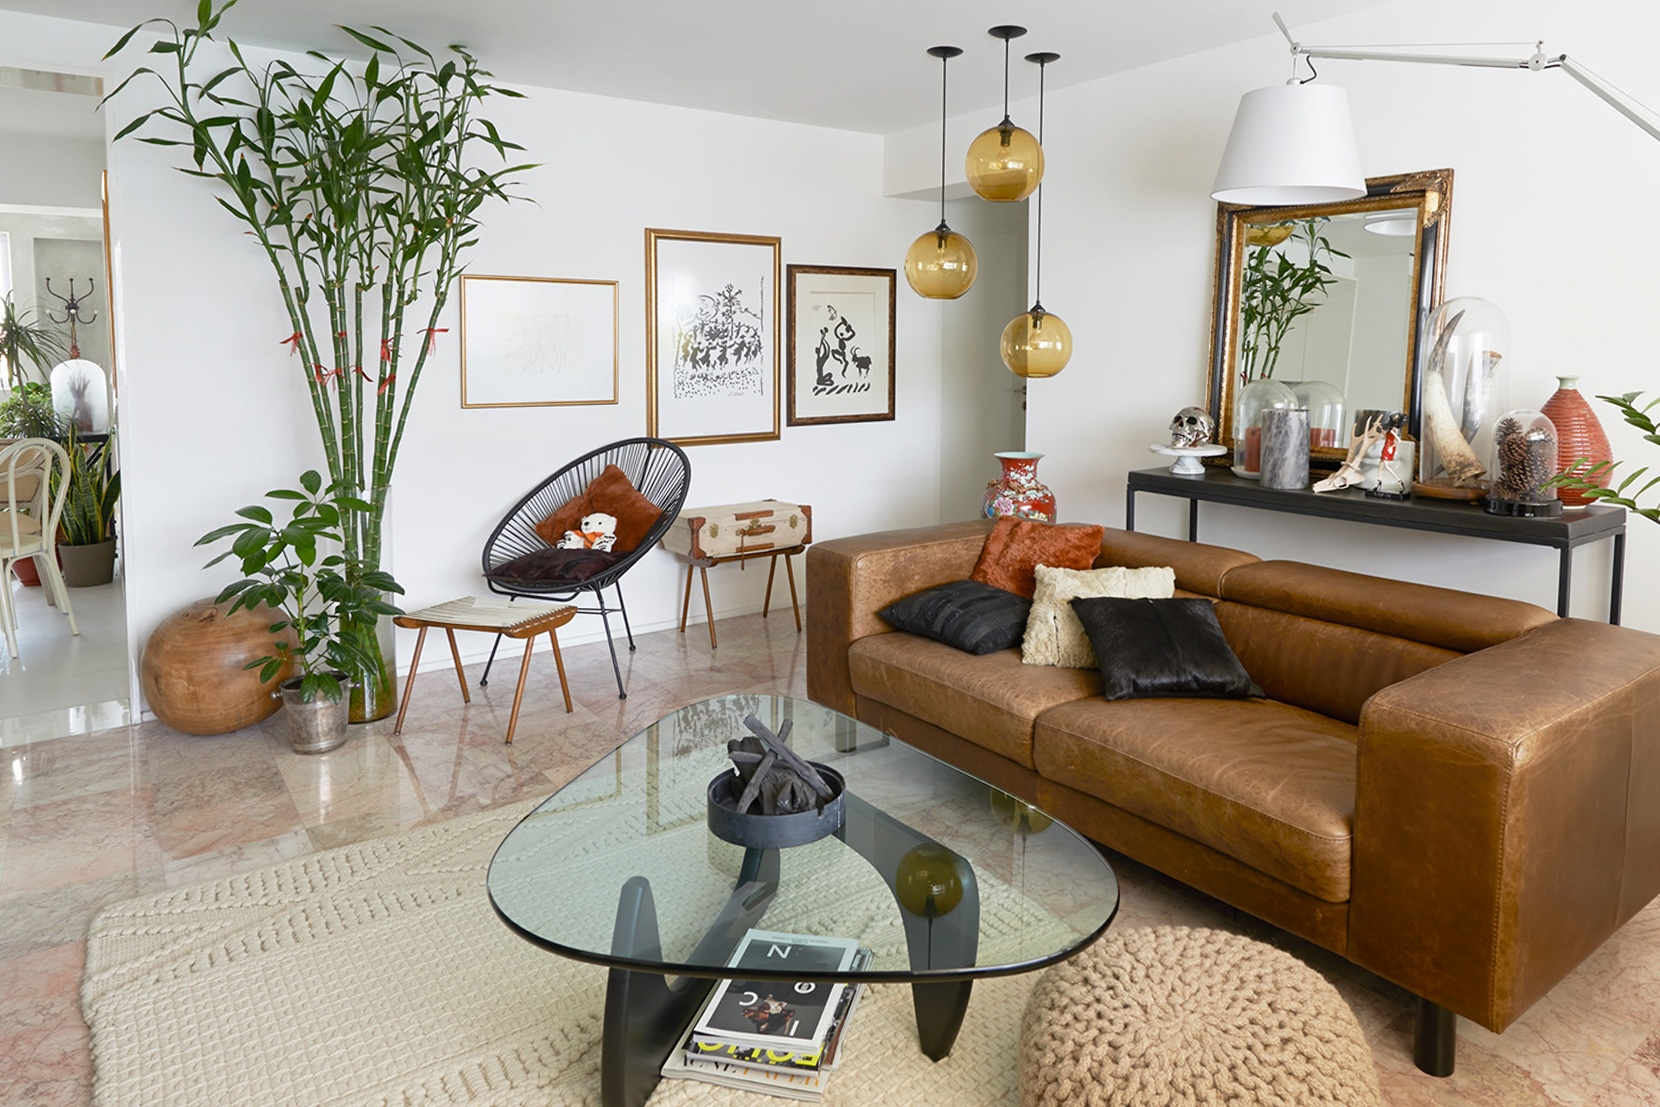 Modern-Living-Room-Lighting-Projects-Jeremy-Tan-Amber-Orbs.jpg